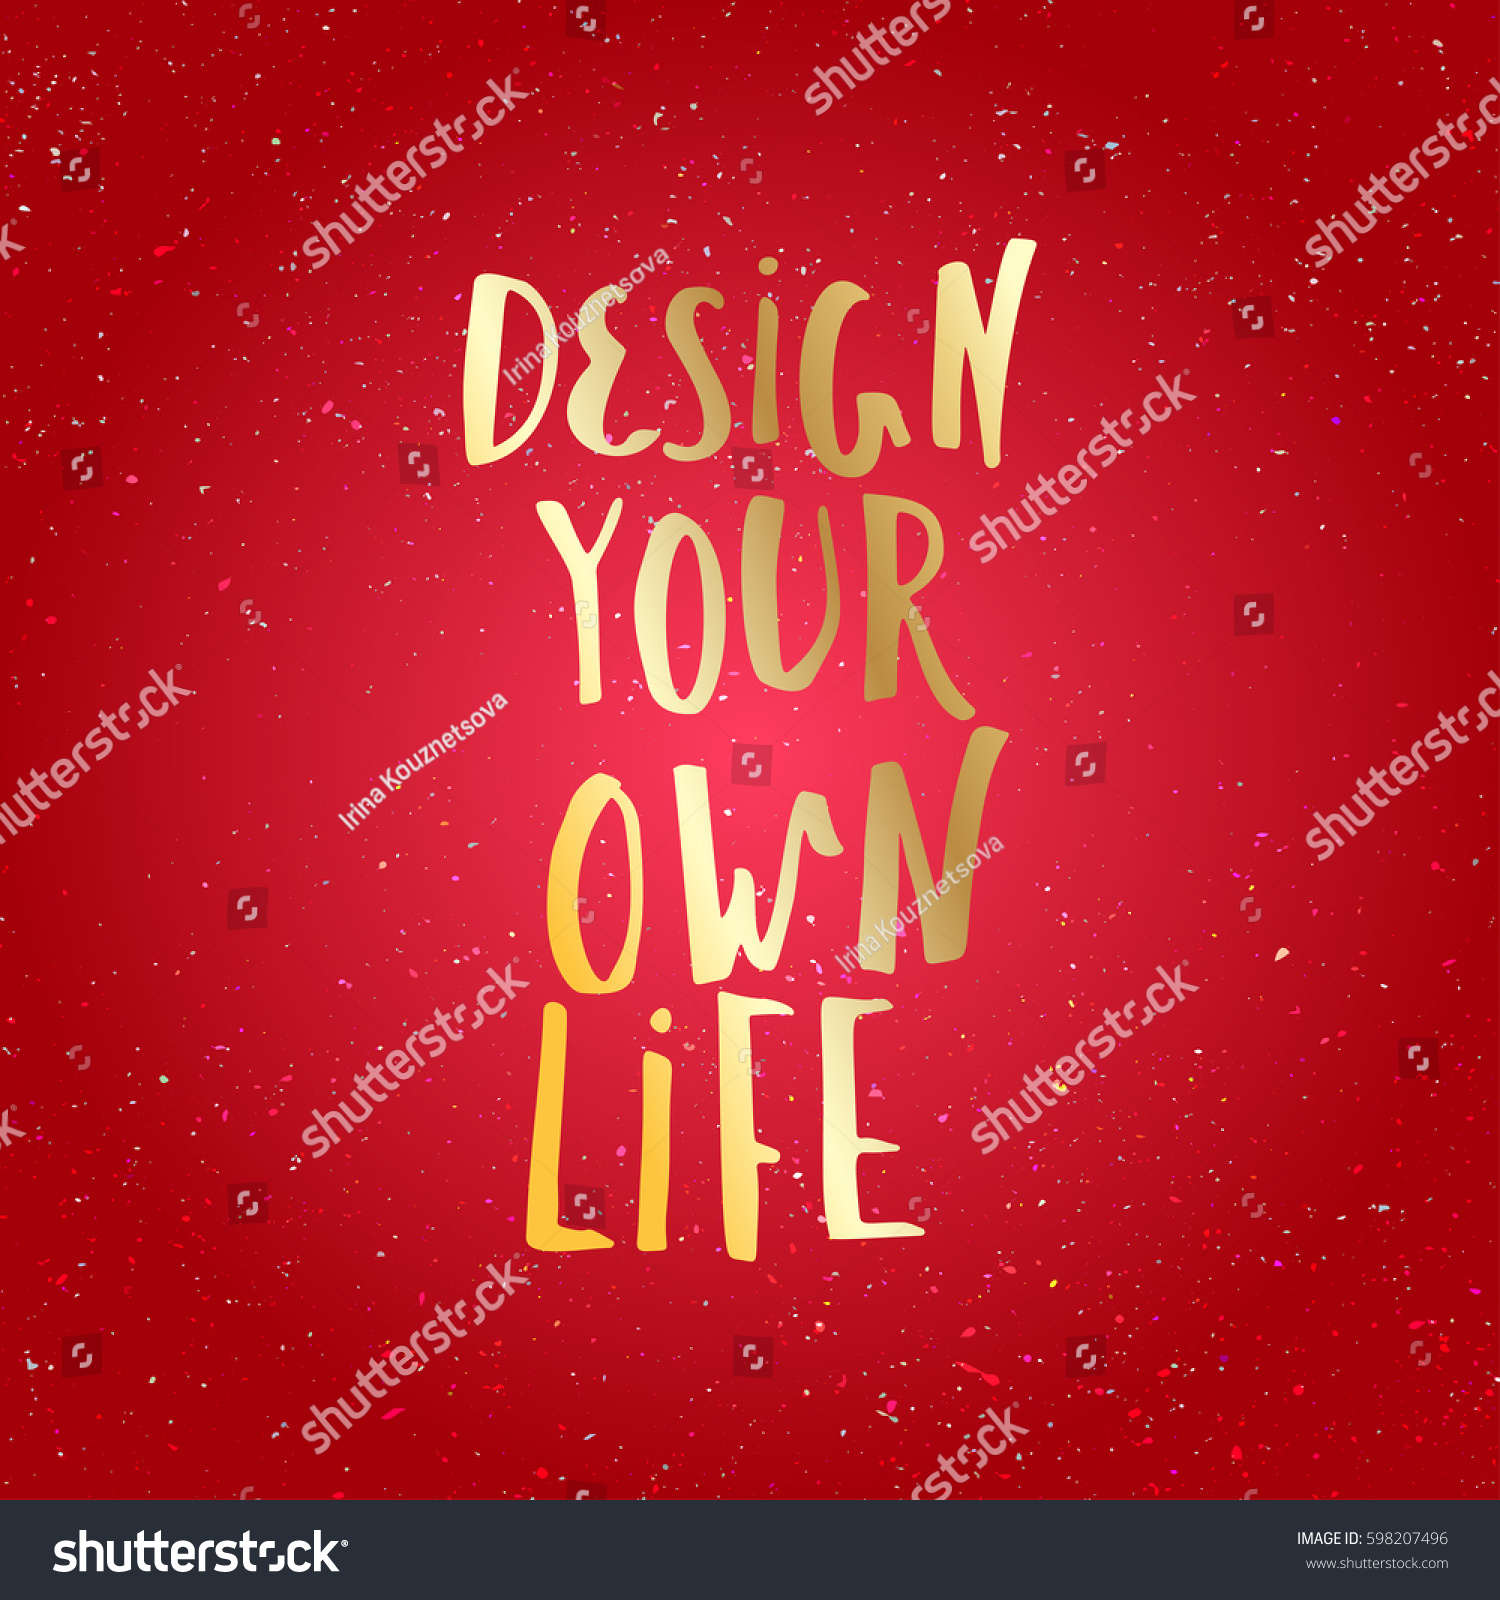 Design Your Own Life Inspirational Quote Stock Vector 598207496